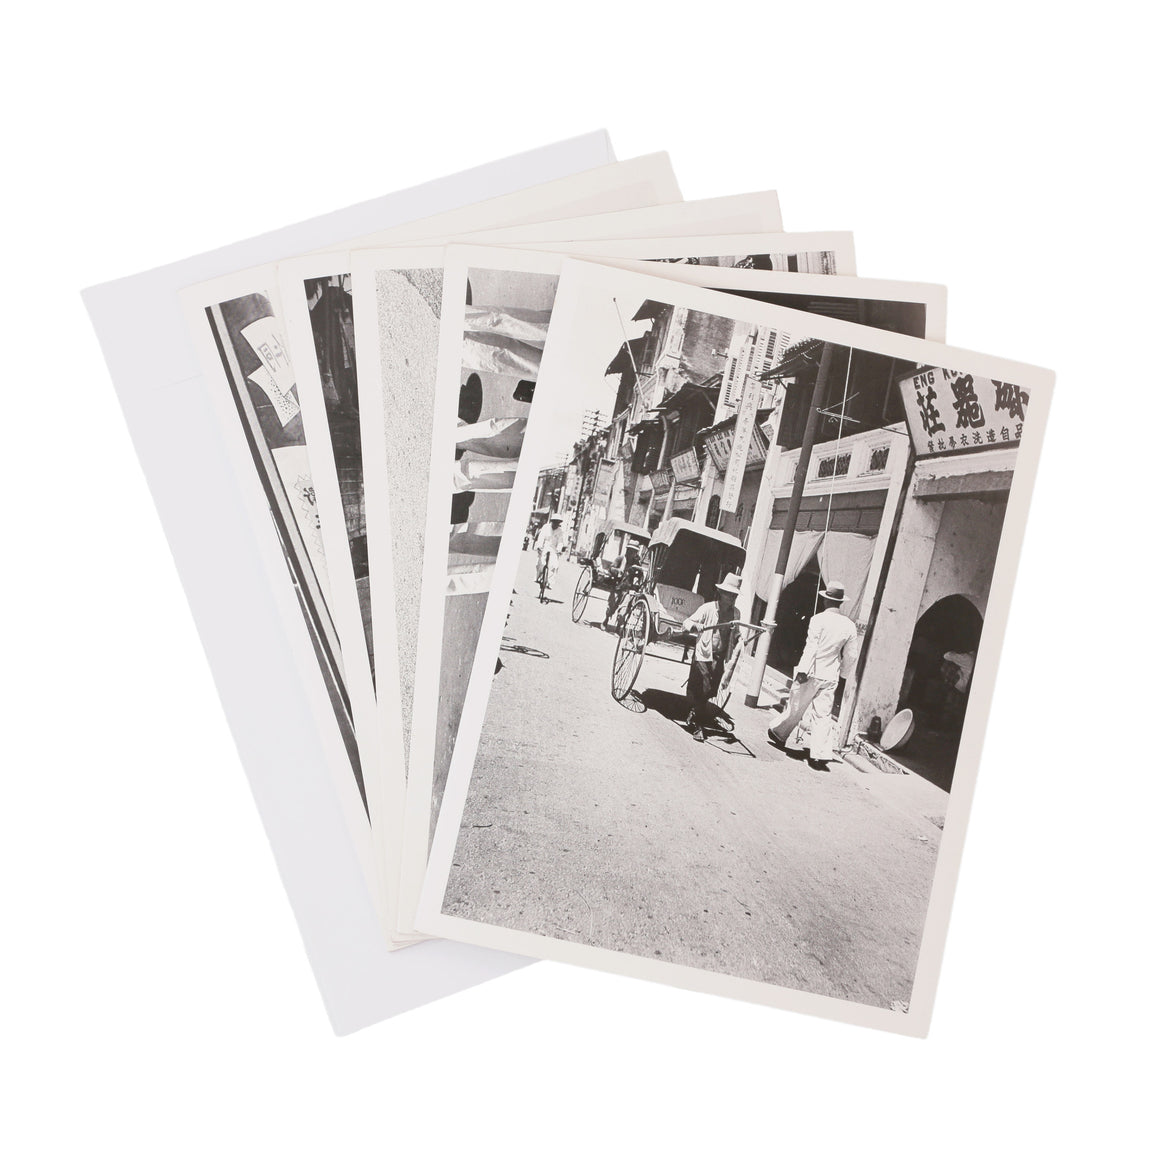 set of 5 black & white postcards of Singapore from original 1930's negatives